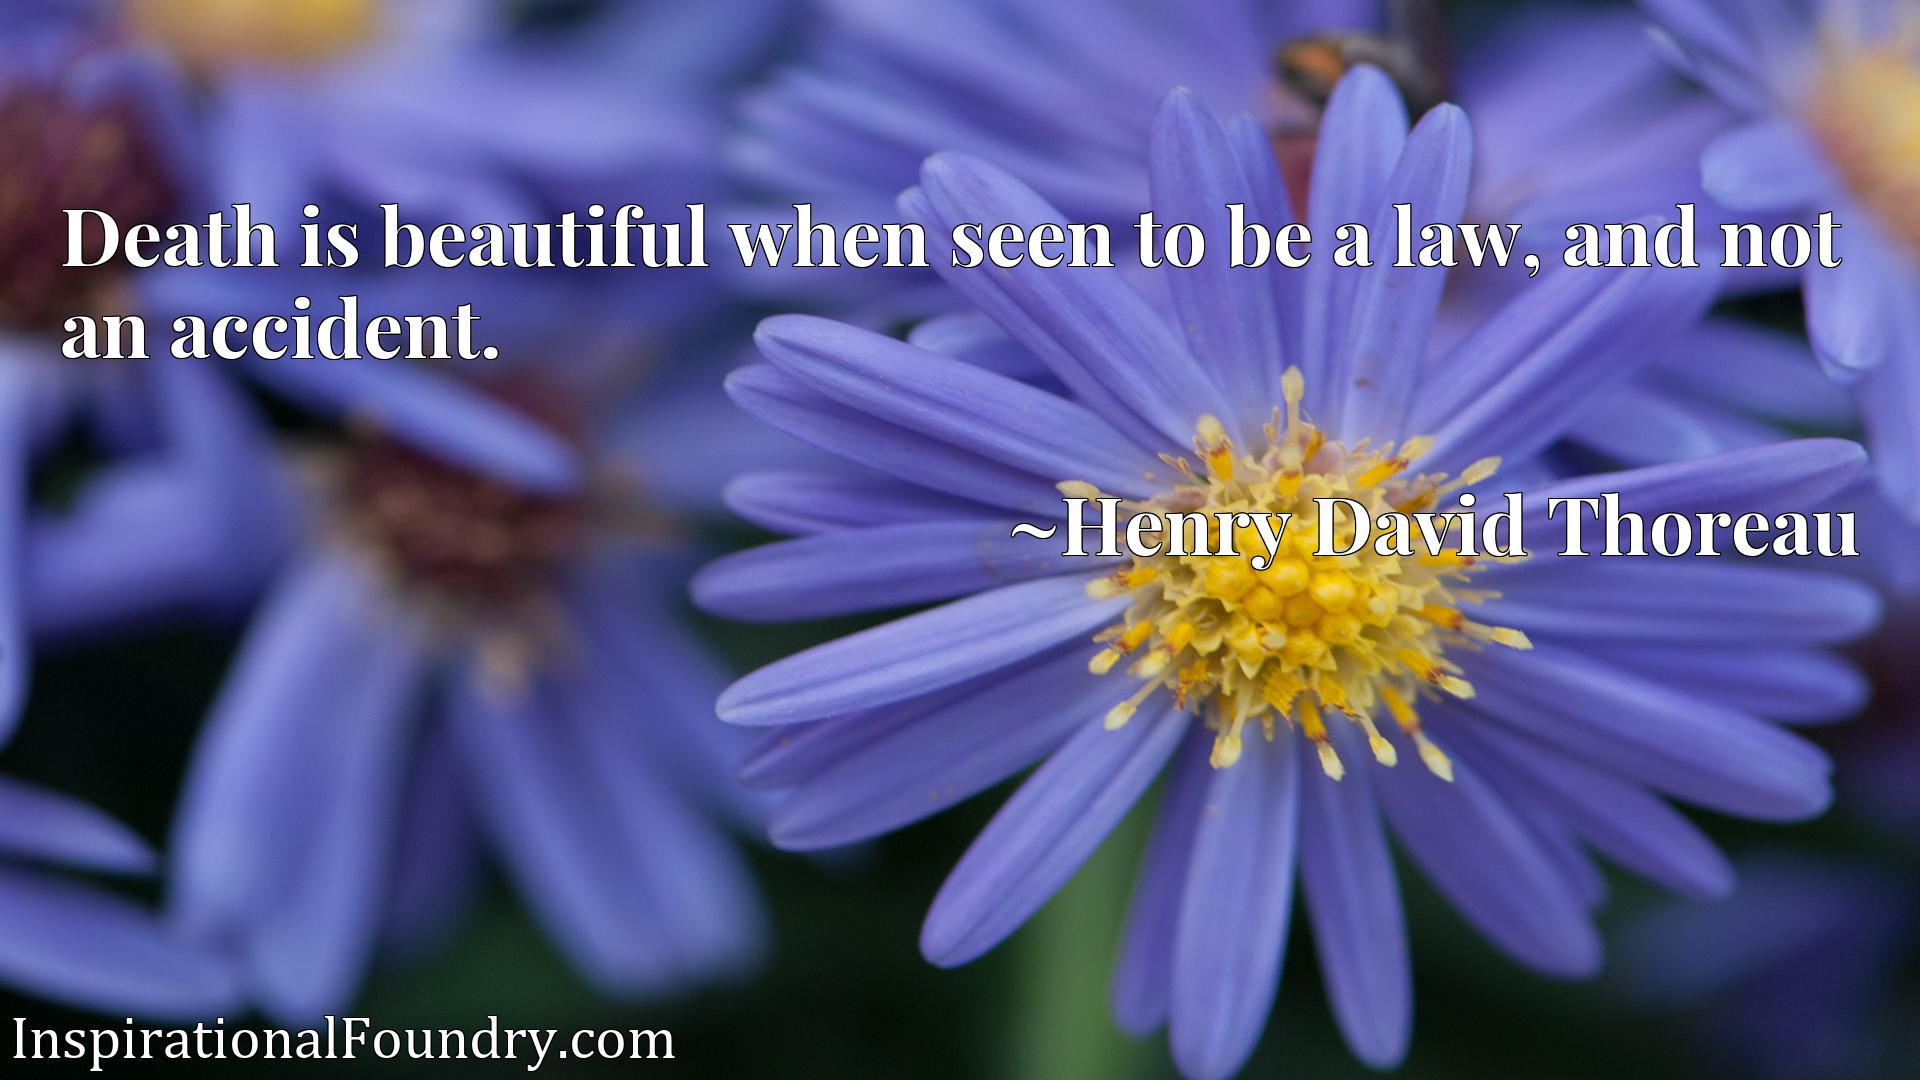 Death is beautiful when seen to be a law, and not an accident.